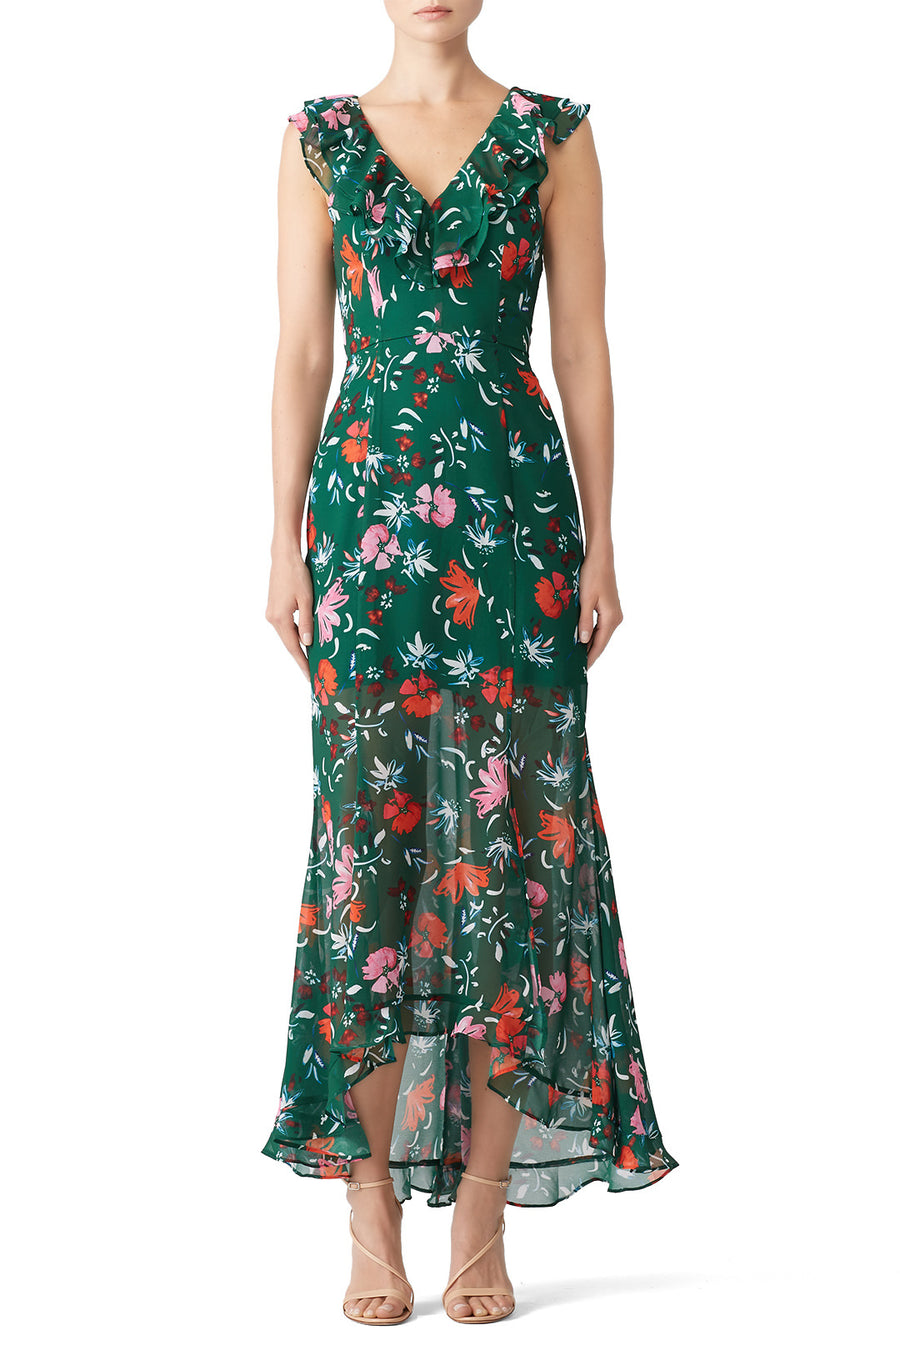 C/MEO Collective Elude Floral Dress (S)